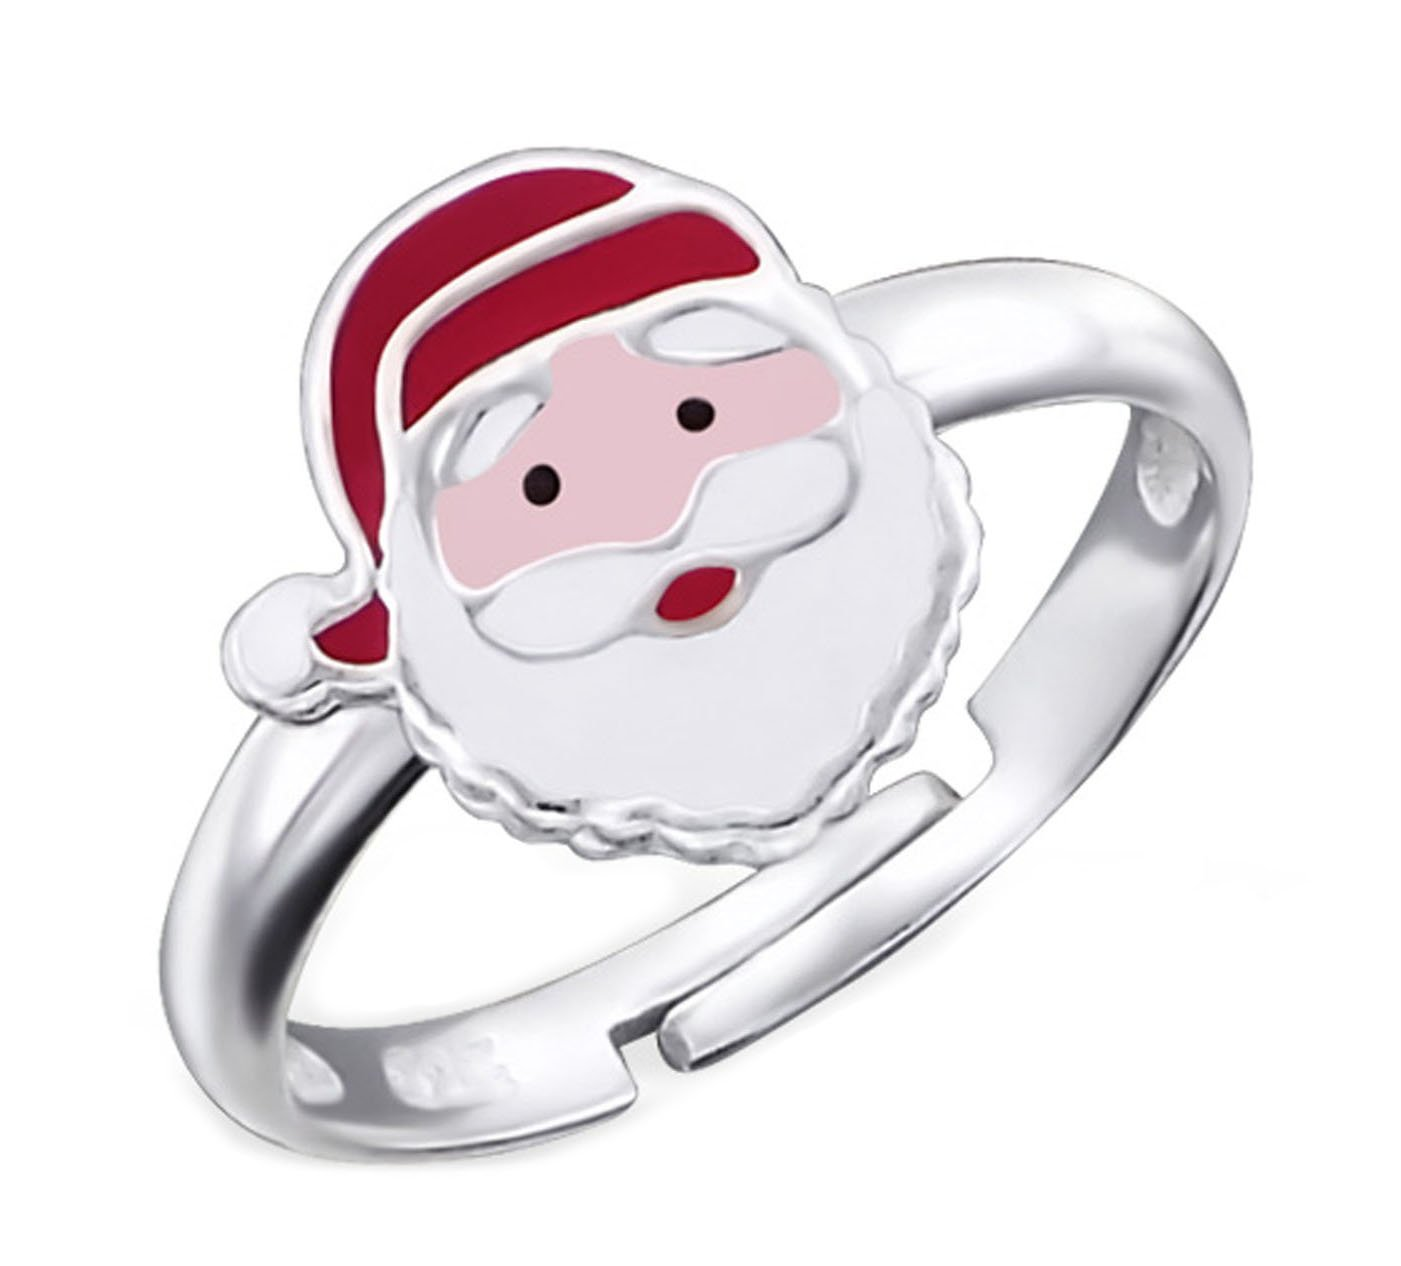 Childrens Jewelry Christmas Santa Claus Ring Size Adjustable Sterling Silver 925 (E20179)